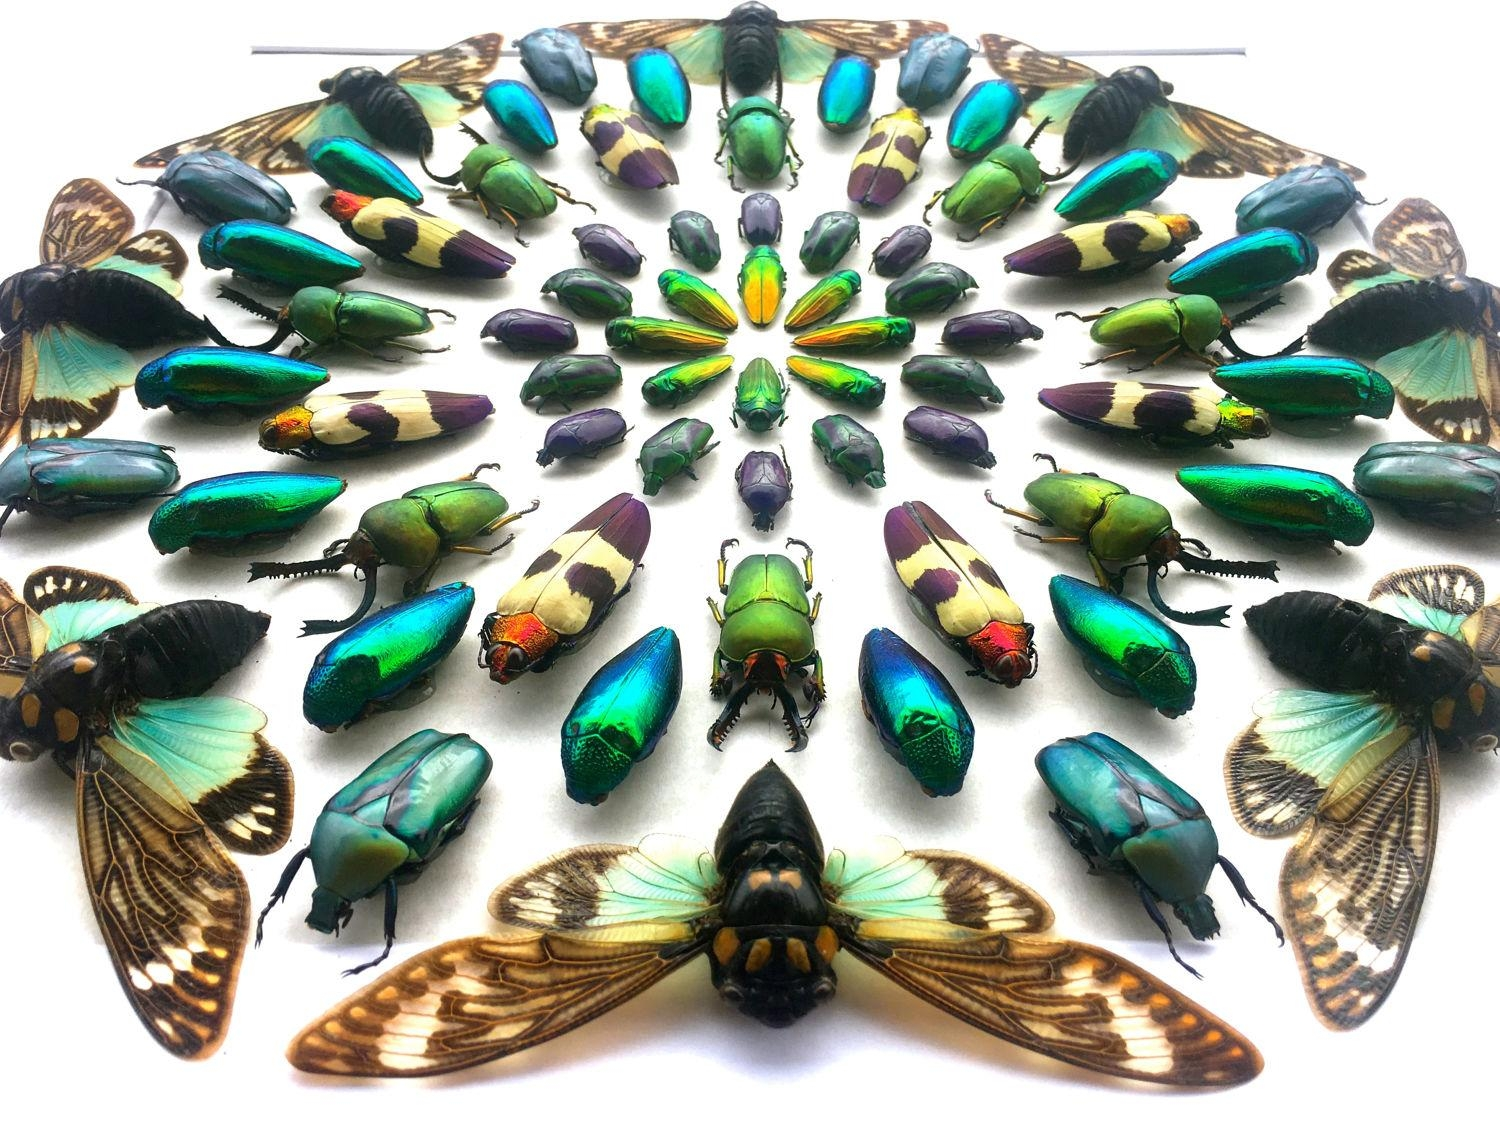 Shadow Box Art Real Taxidermy 3D Wall Art Large Artwork Cool With Insect Wall Art (Image 17 of 20)